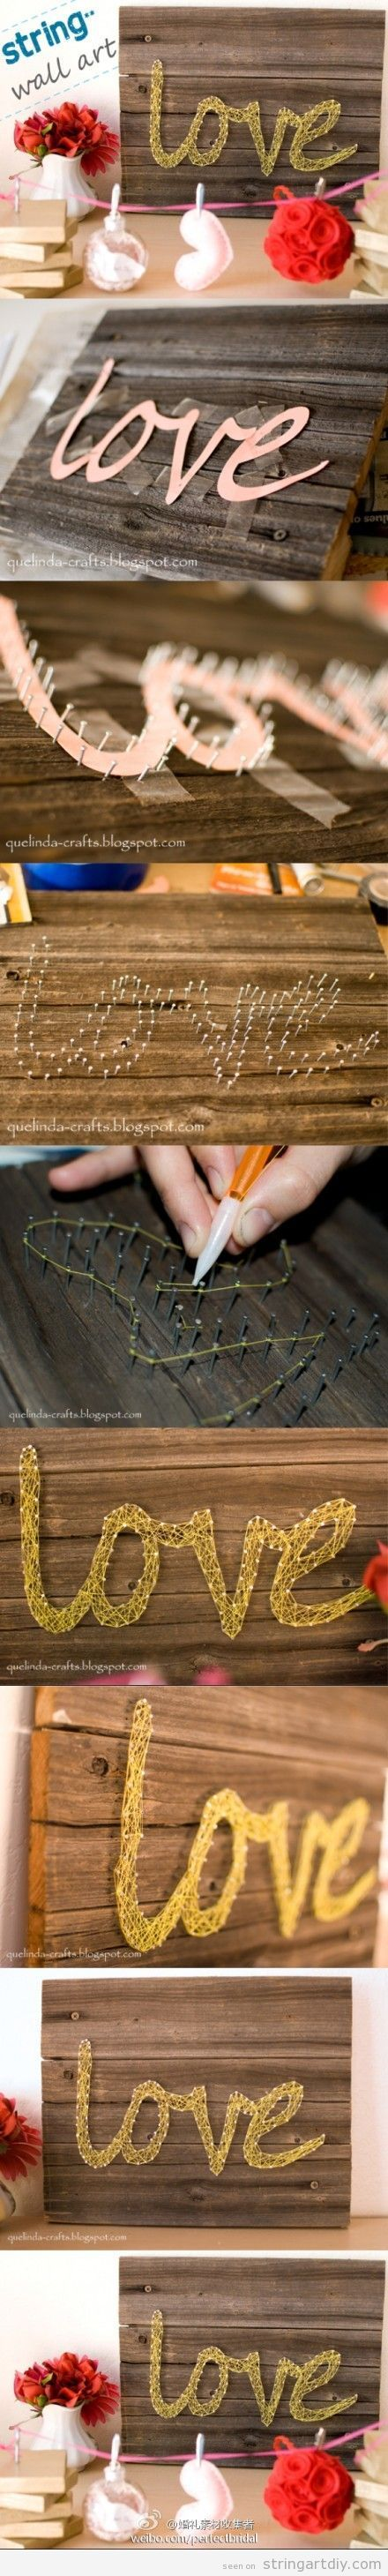 string art diy tutorial love word String Wall Art with the word Love, tutorial